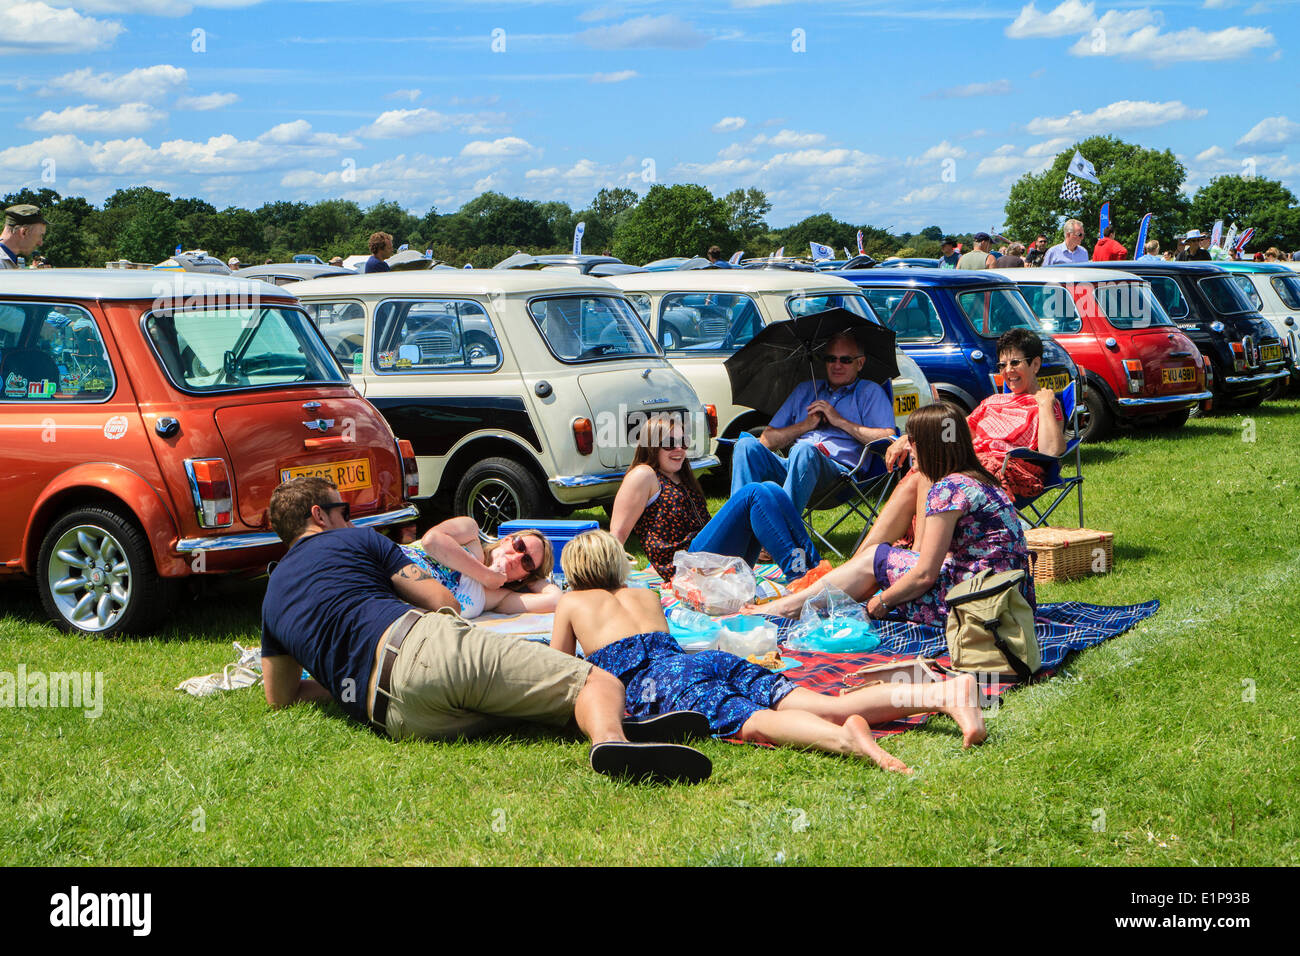 Bromley Pageant of Motoring annual classic car show. Visitors in the Austin Mini area. - Stock Image